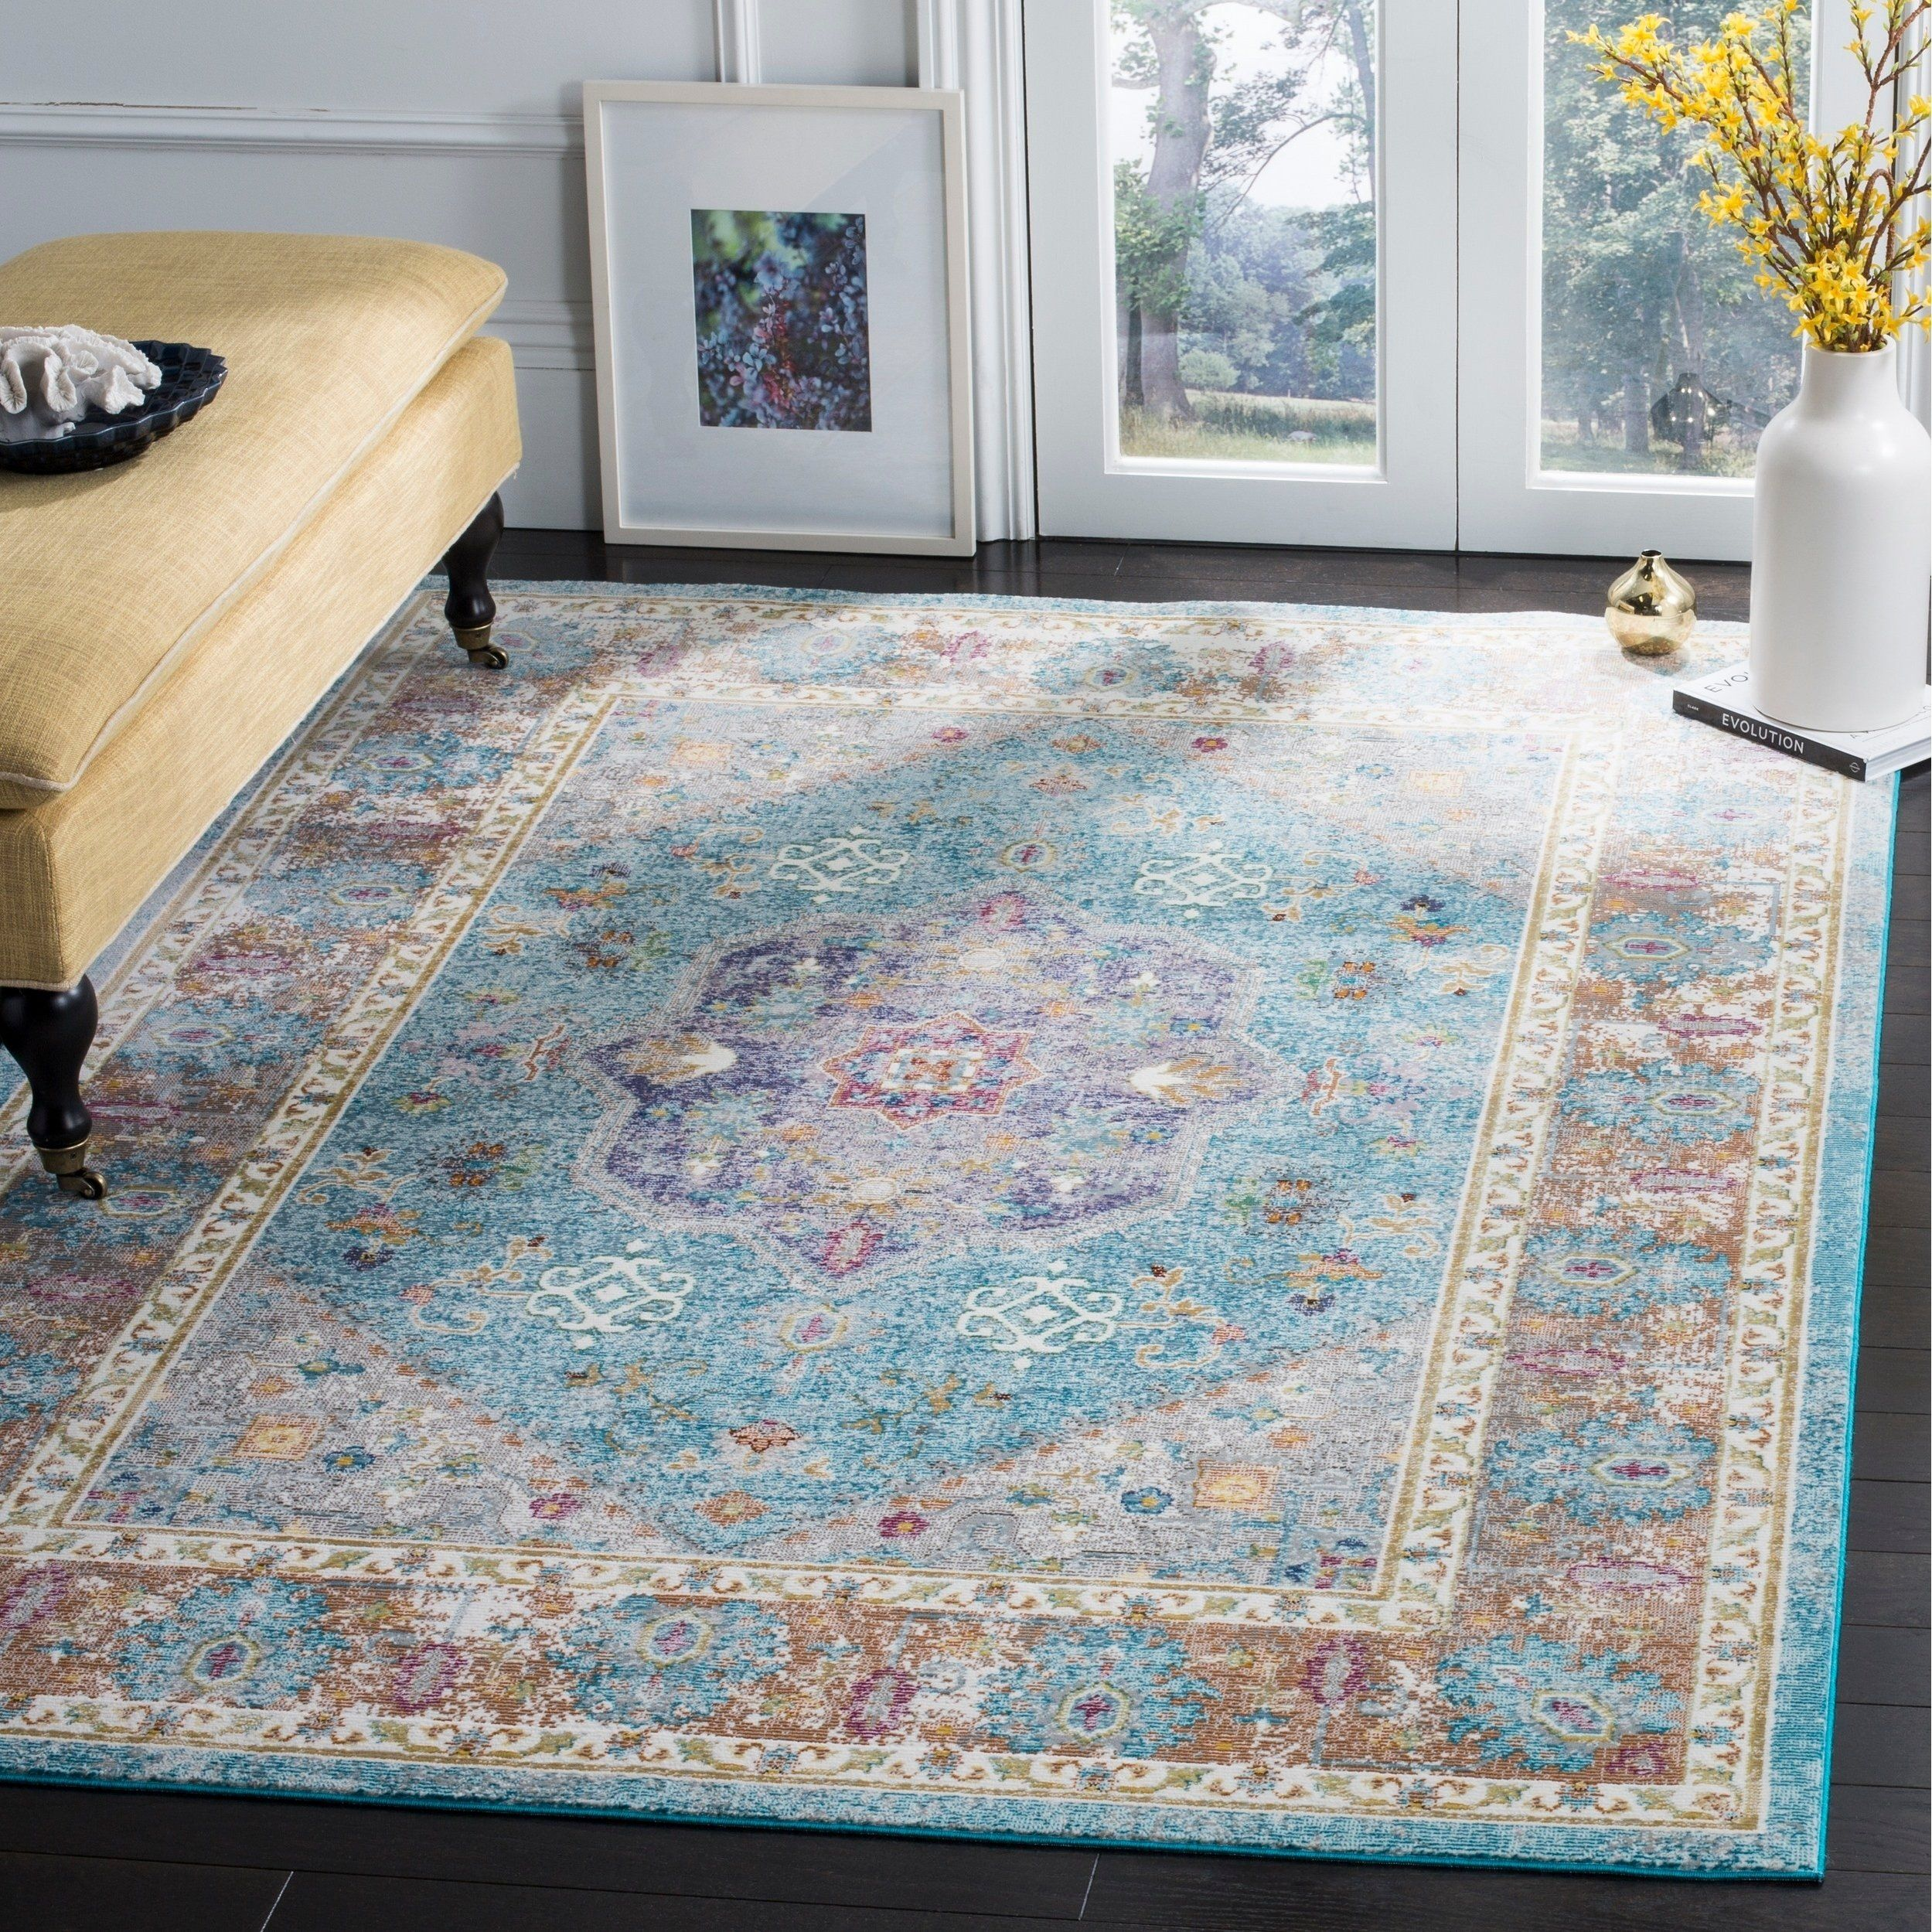 Safavieh Aria Vintage Oriental Blue Creme Rug 10 X 14 10 X 14 Blue Creme Traditional Area Rugs Area Rugs Blue Area Rugs